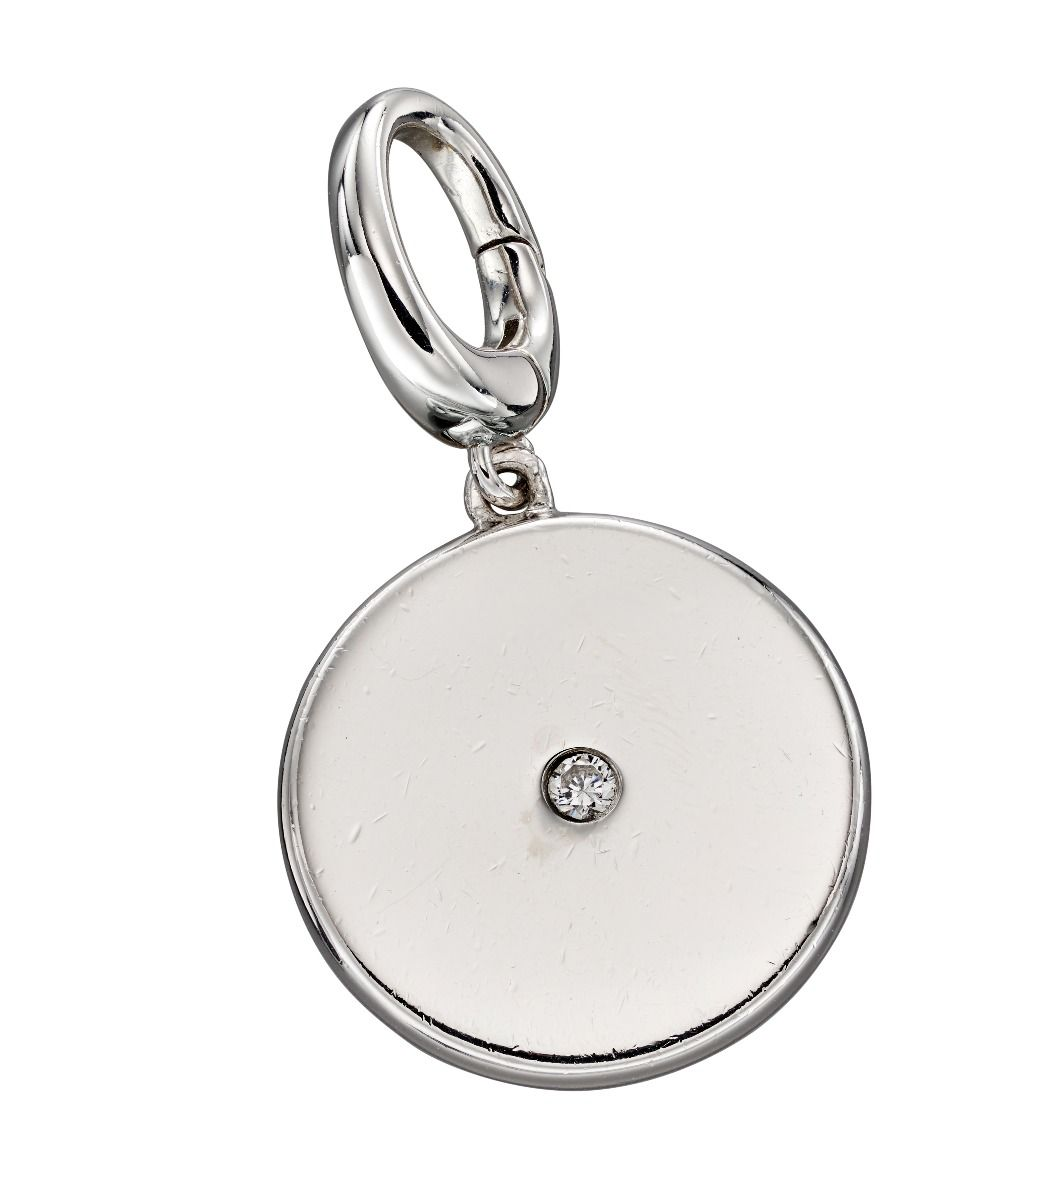 Fiorelli Silver Womens 925 Sterling Silver Cubic Zirconia Bigger Round Disc Spring Catch Charm